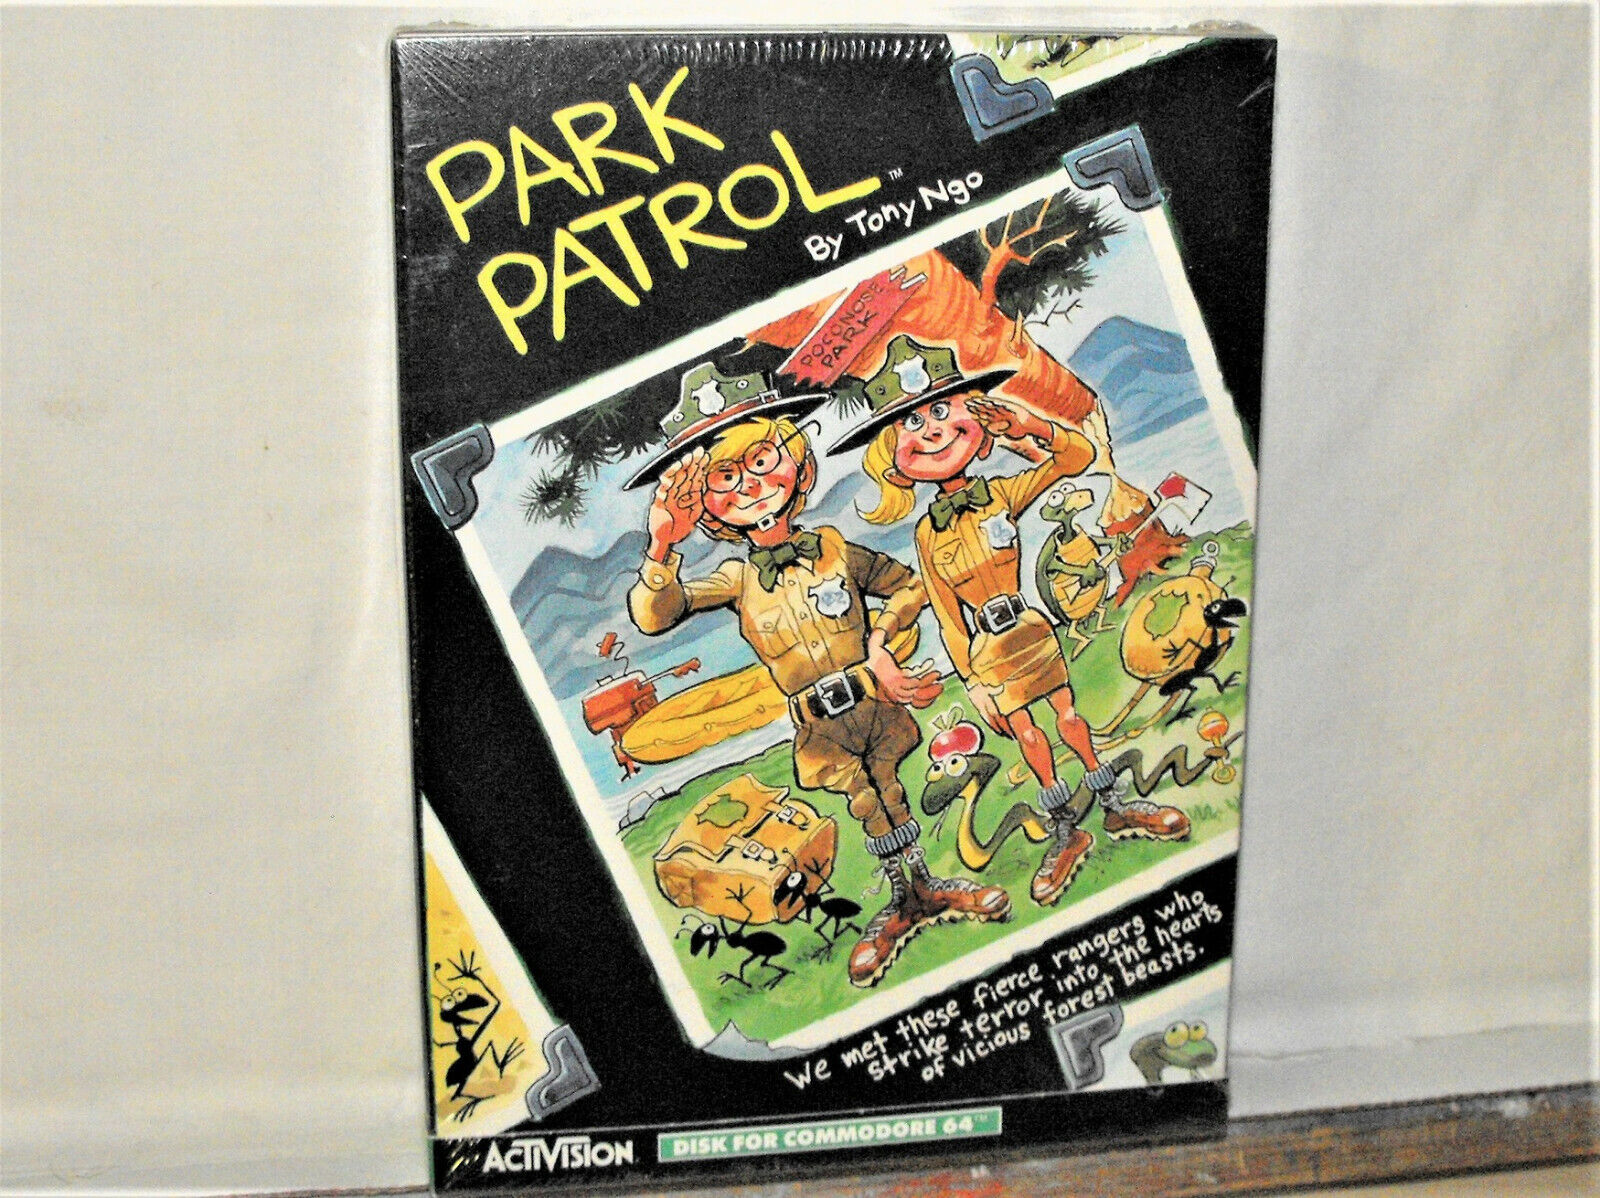 Computer Games - Commodore 64 Computer Game PARK PATROL Activision Disk Software Sealed Box 1984